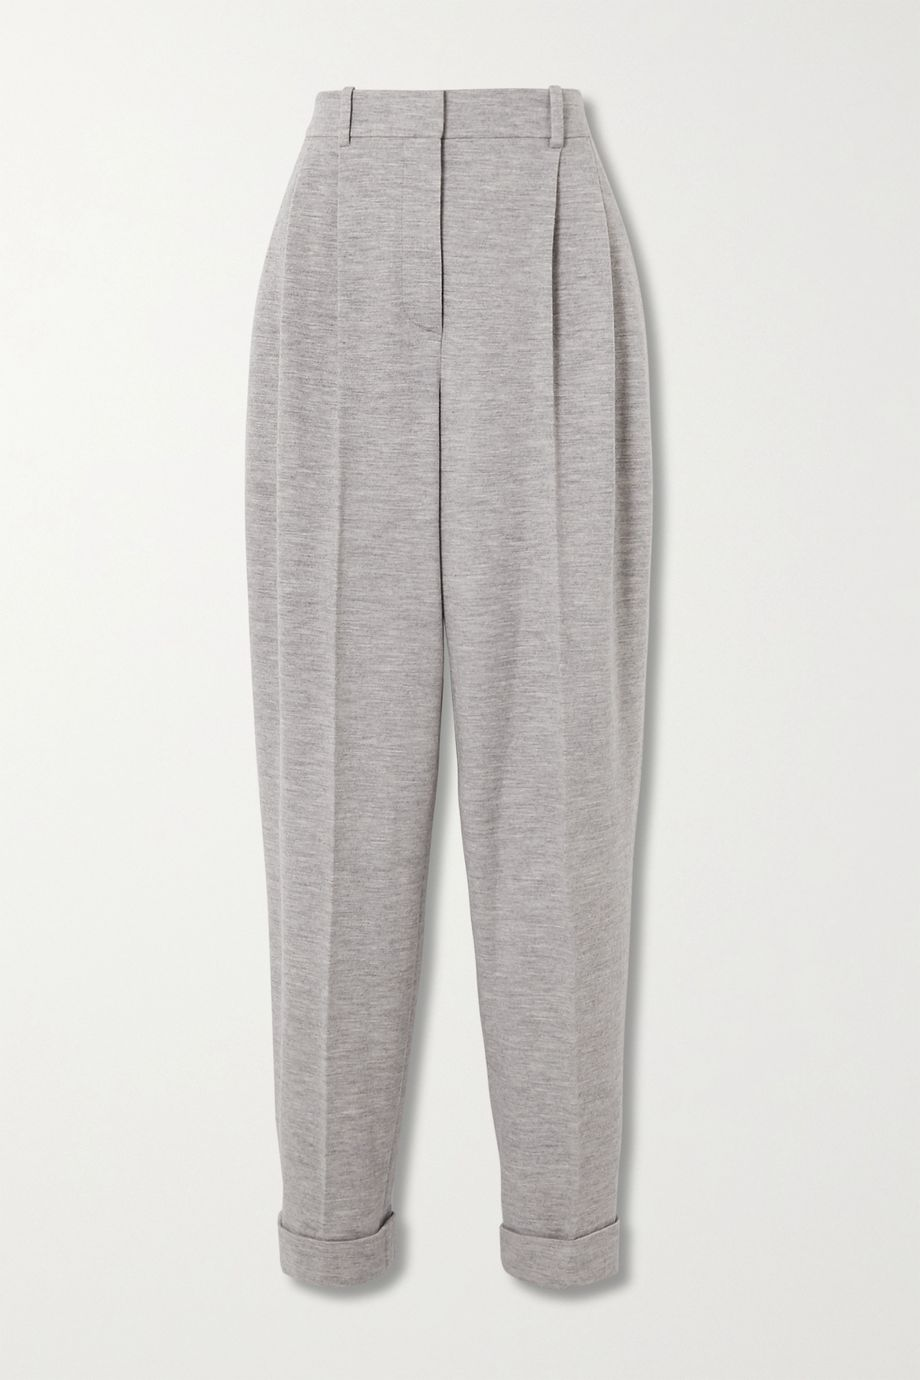 Roksanda Venezio wool-jersey tapered pants